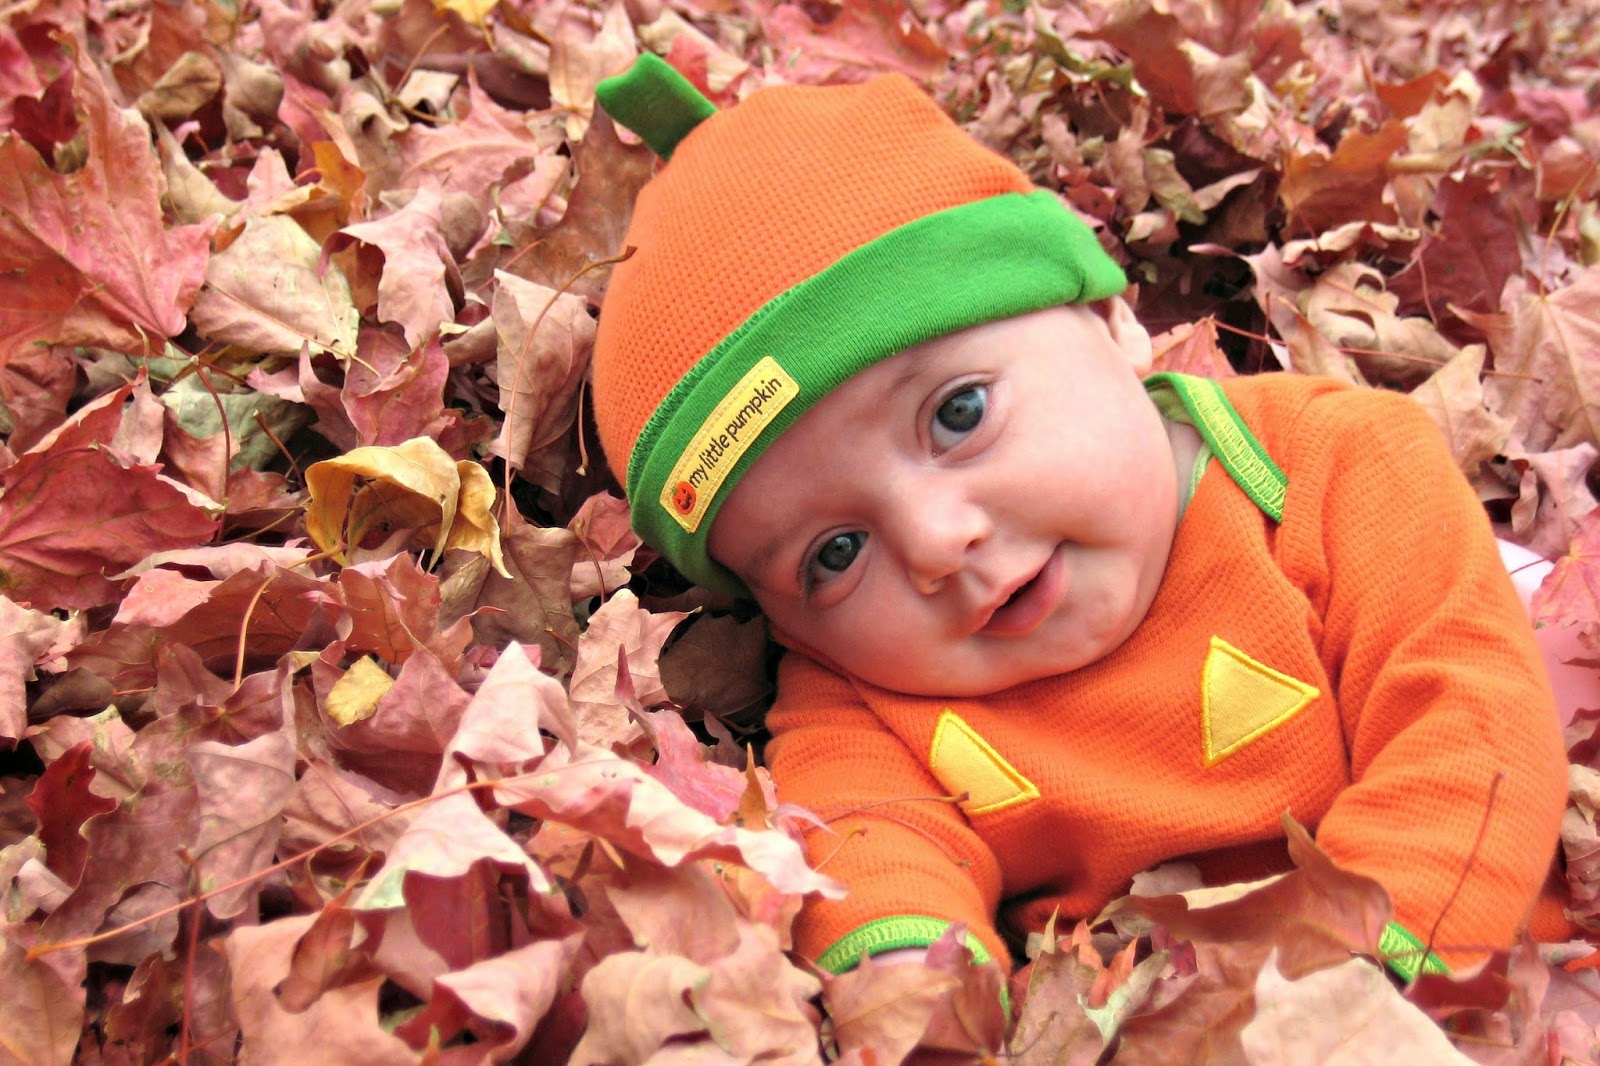 adopting a baby from foster care